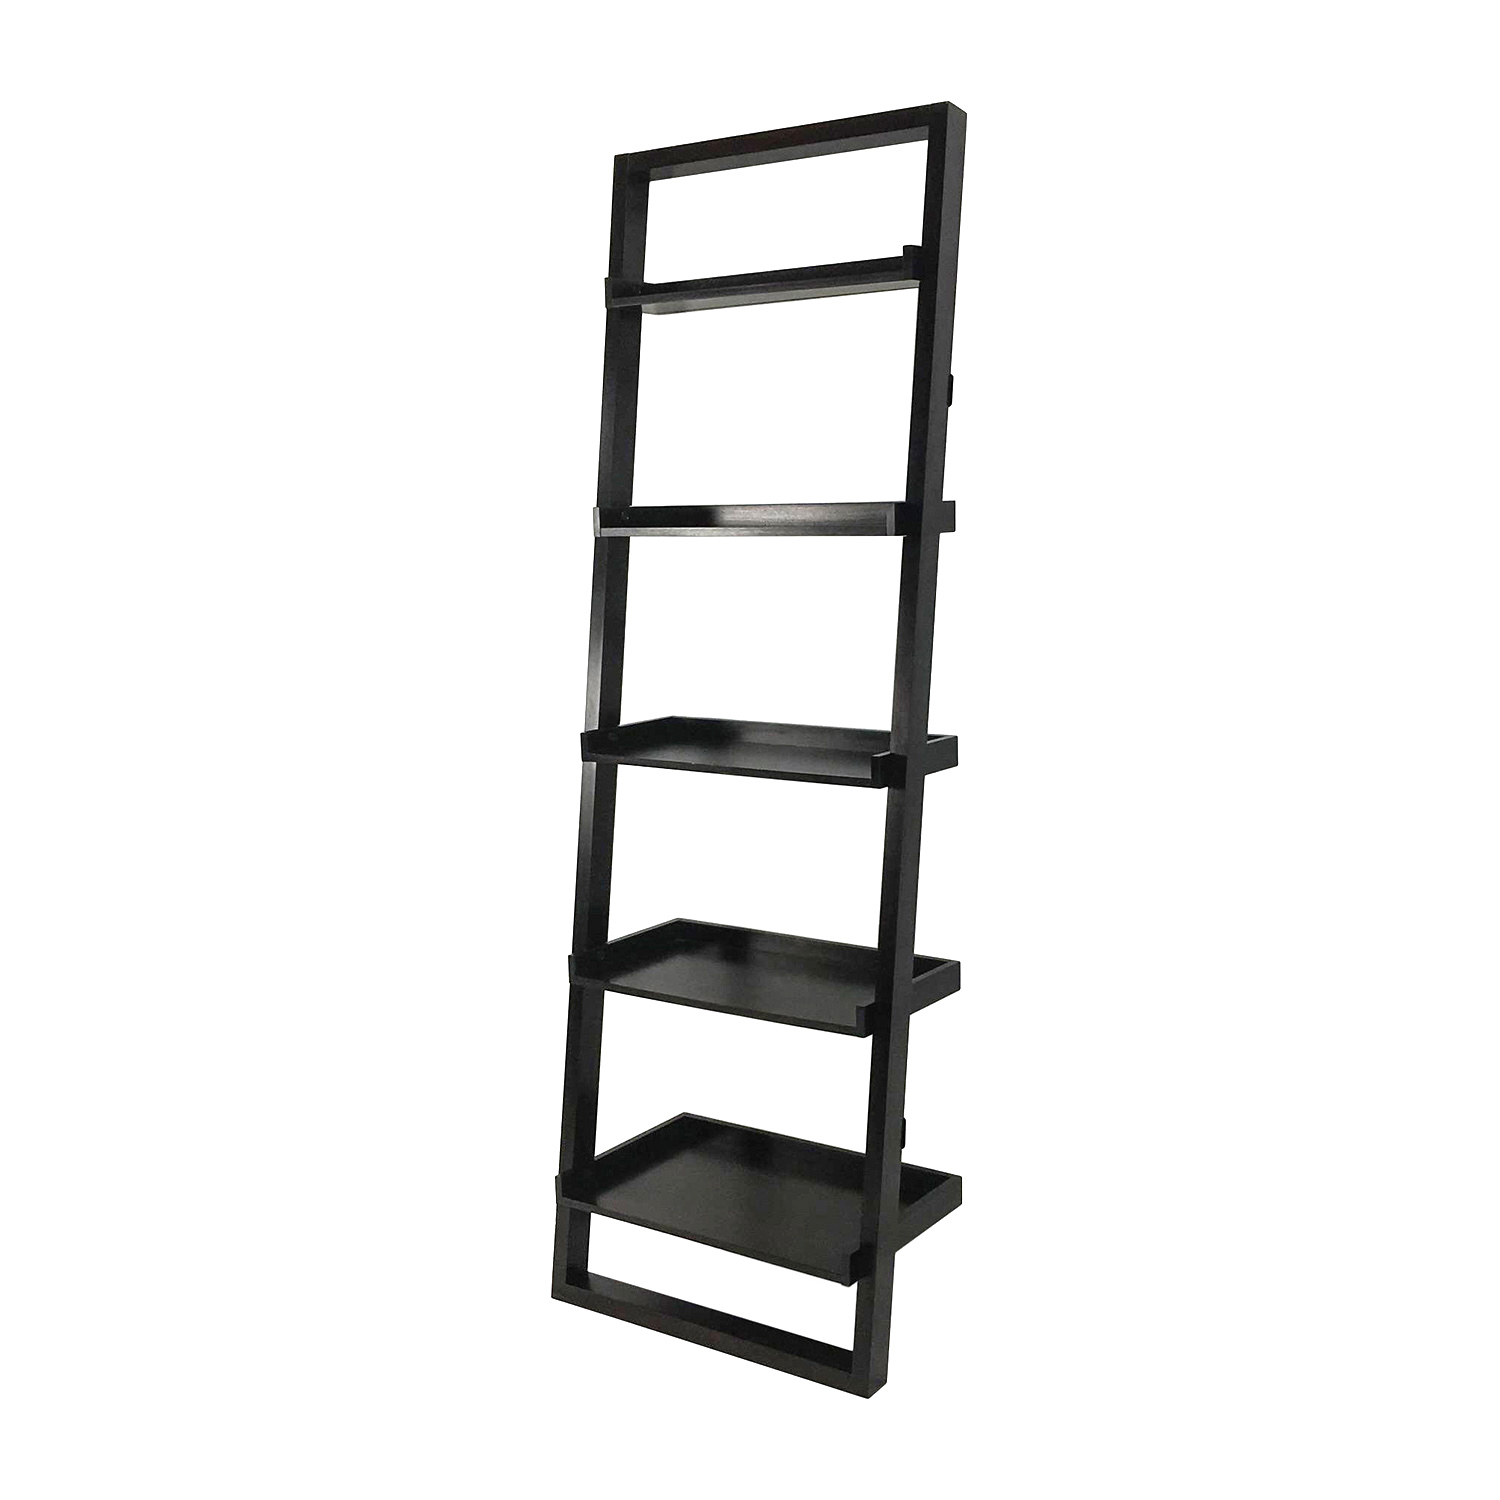 Crate And Barrel Crate & Barrel Wide Leaning